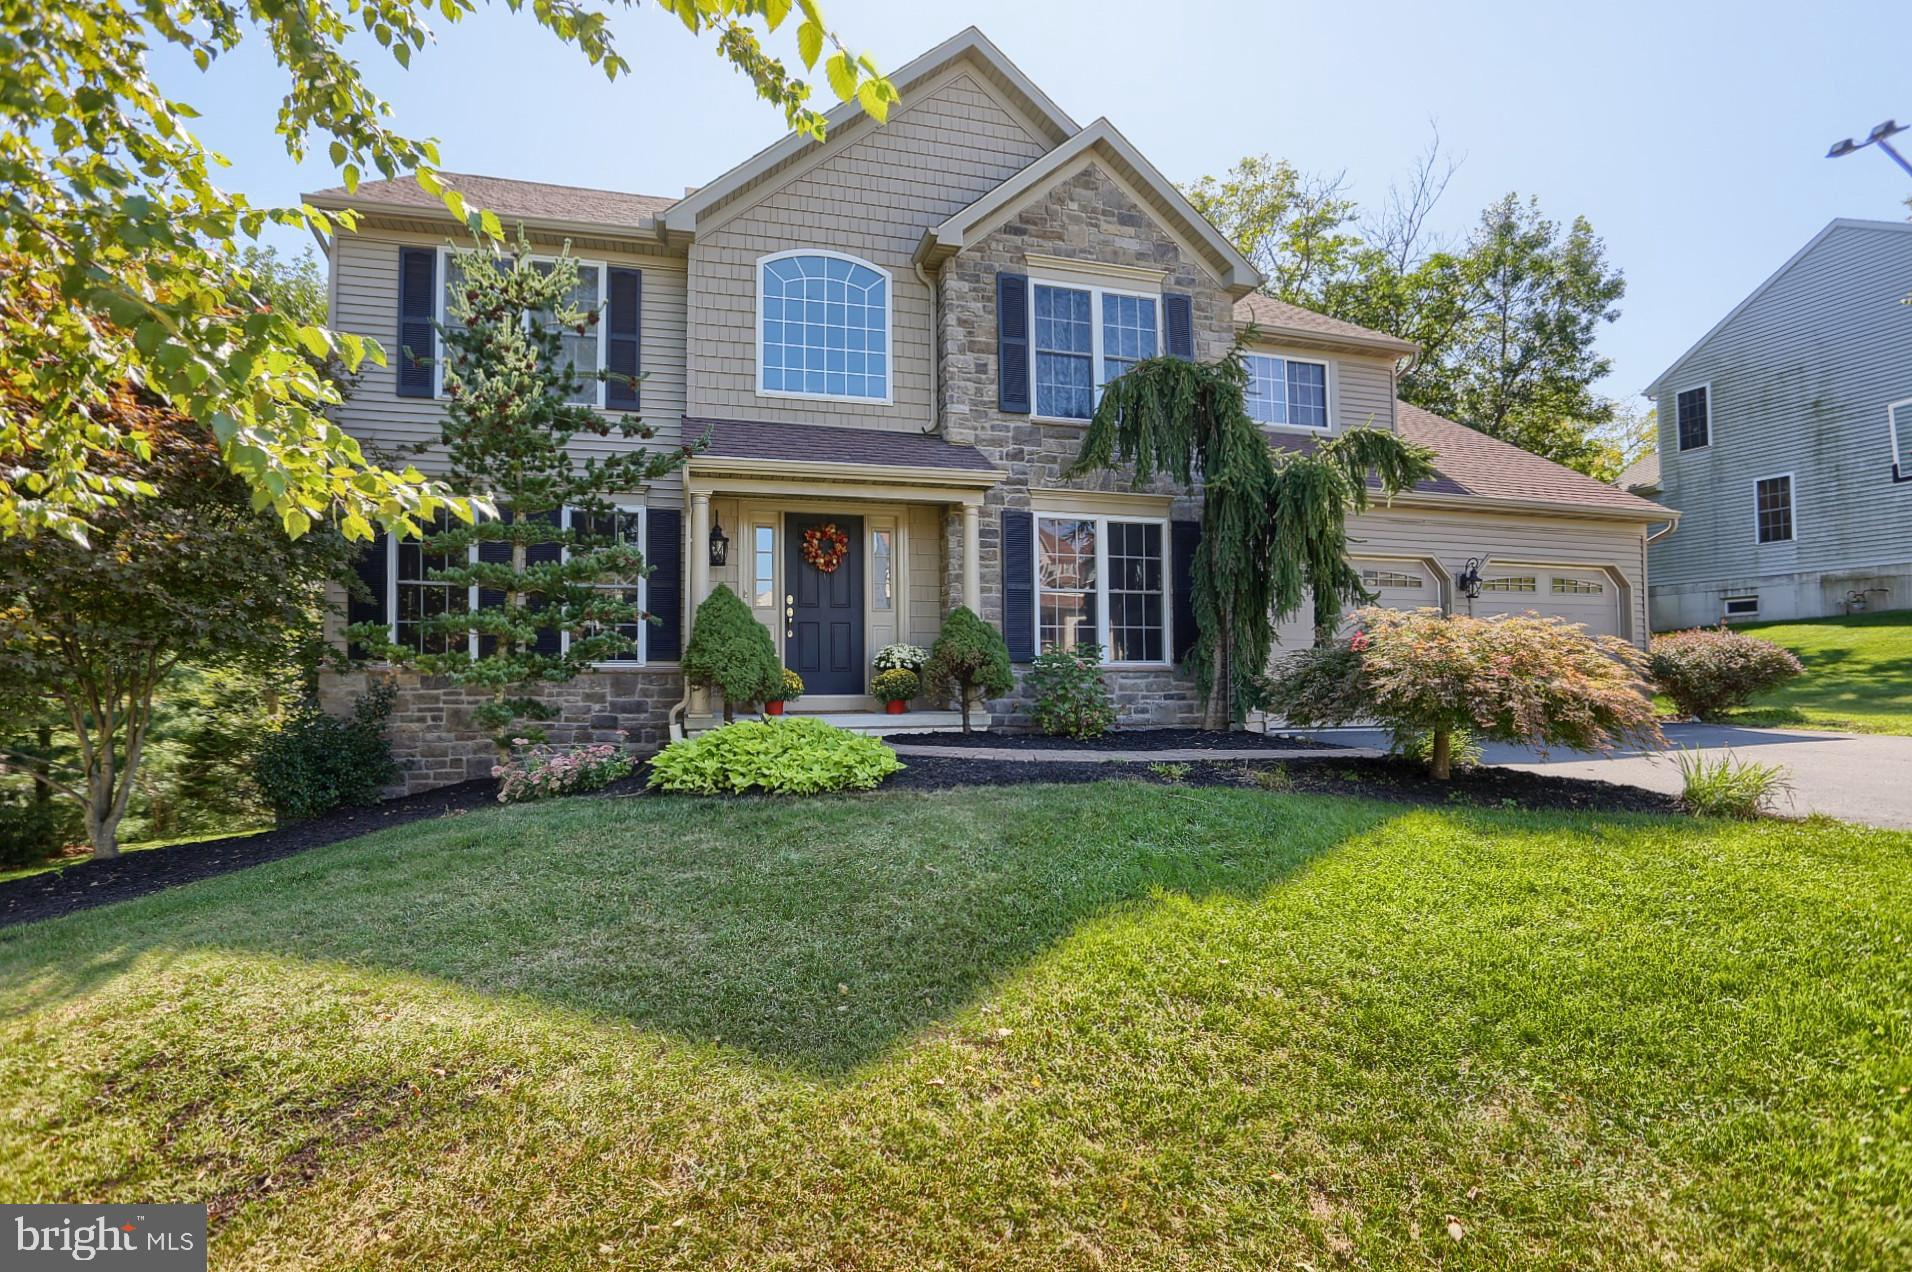 13 KANTNER LN S, READING, PA 19607